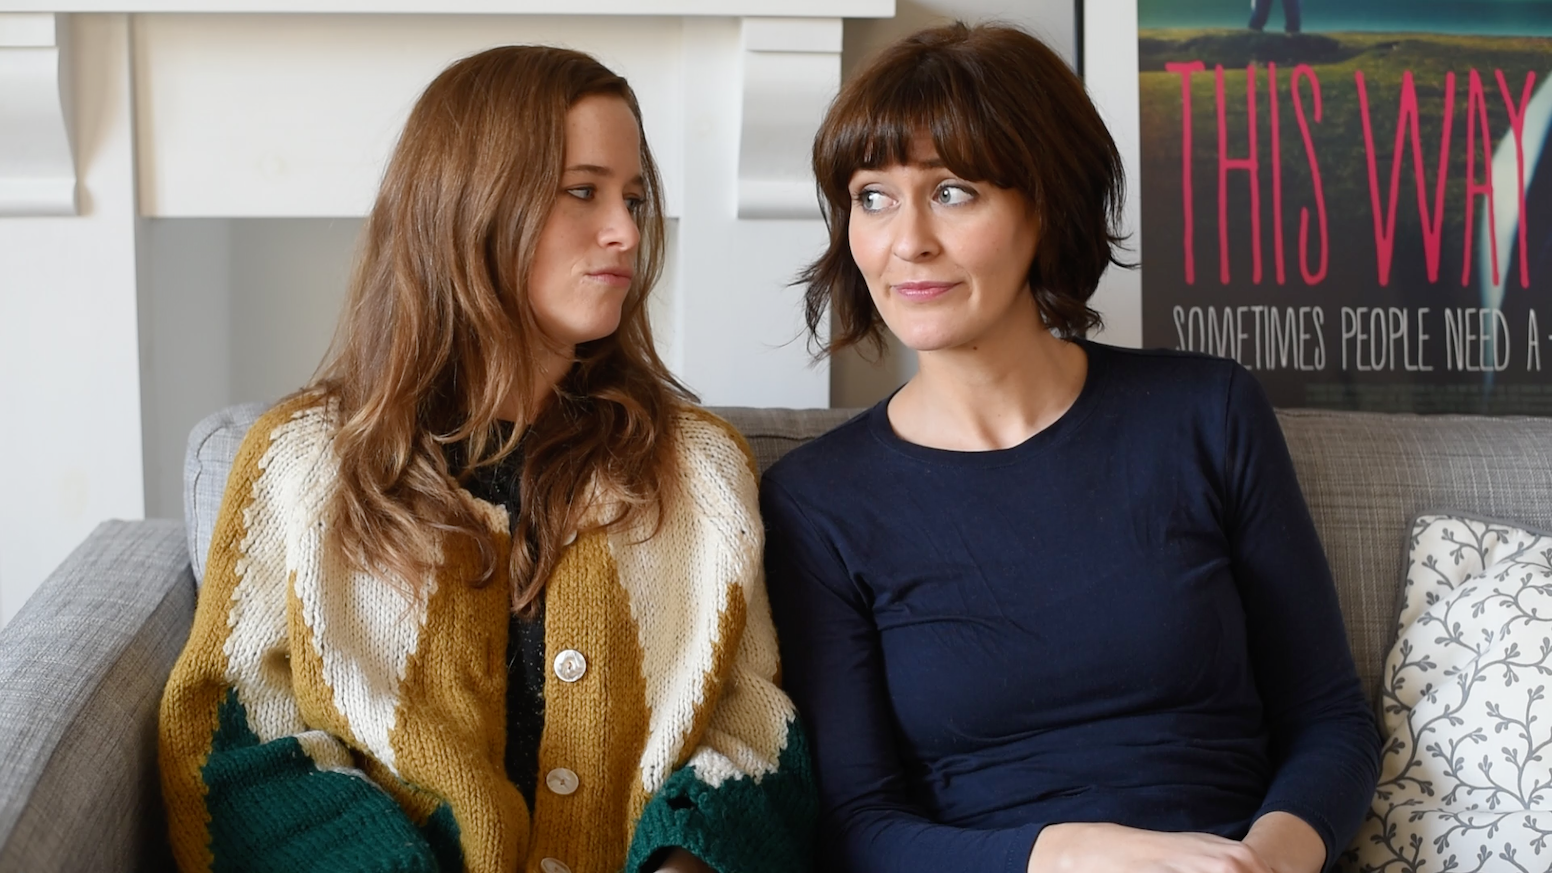 Jet-black comedy-thriller feature about self help addict, Lou, who unwittingly finds herself on a killing spree with her unhinged new life coach, Val.